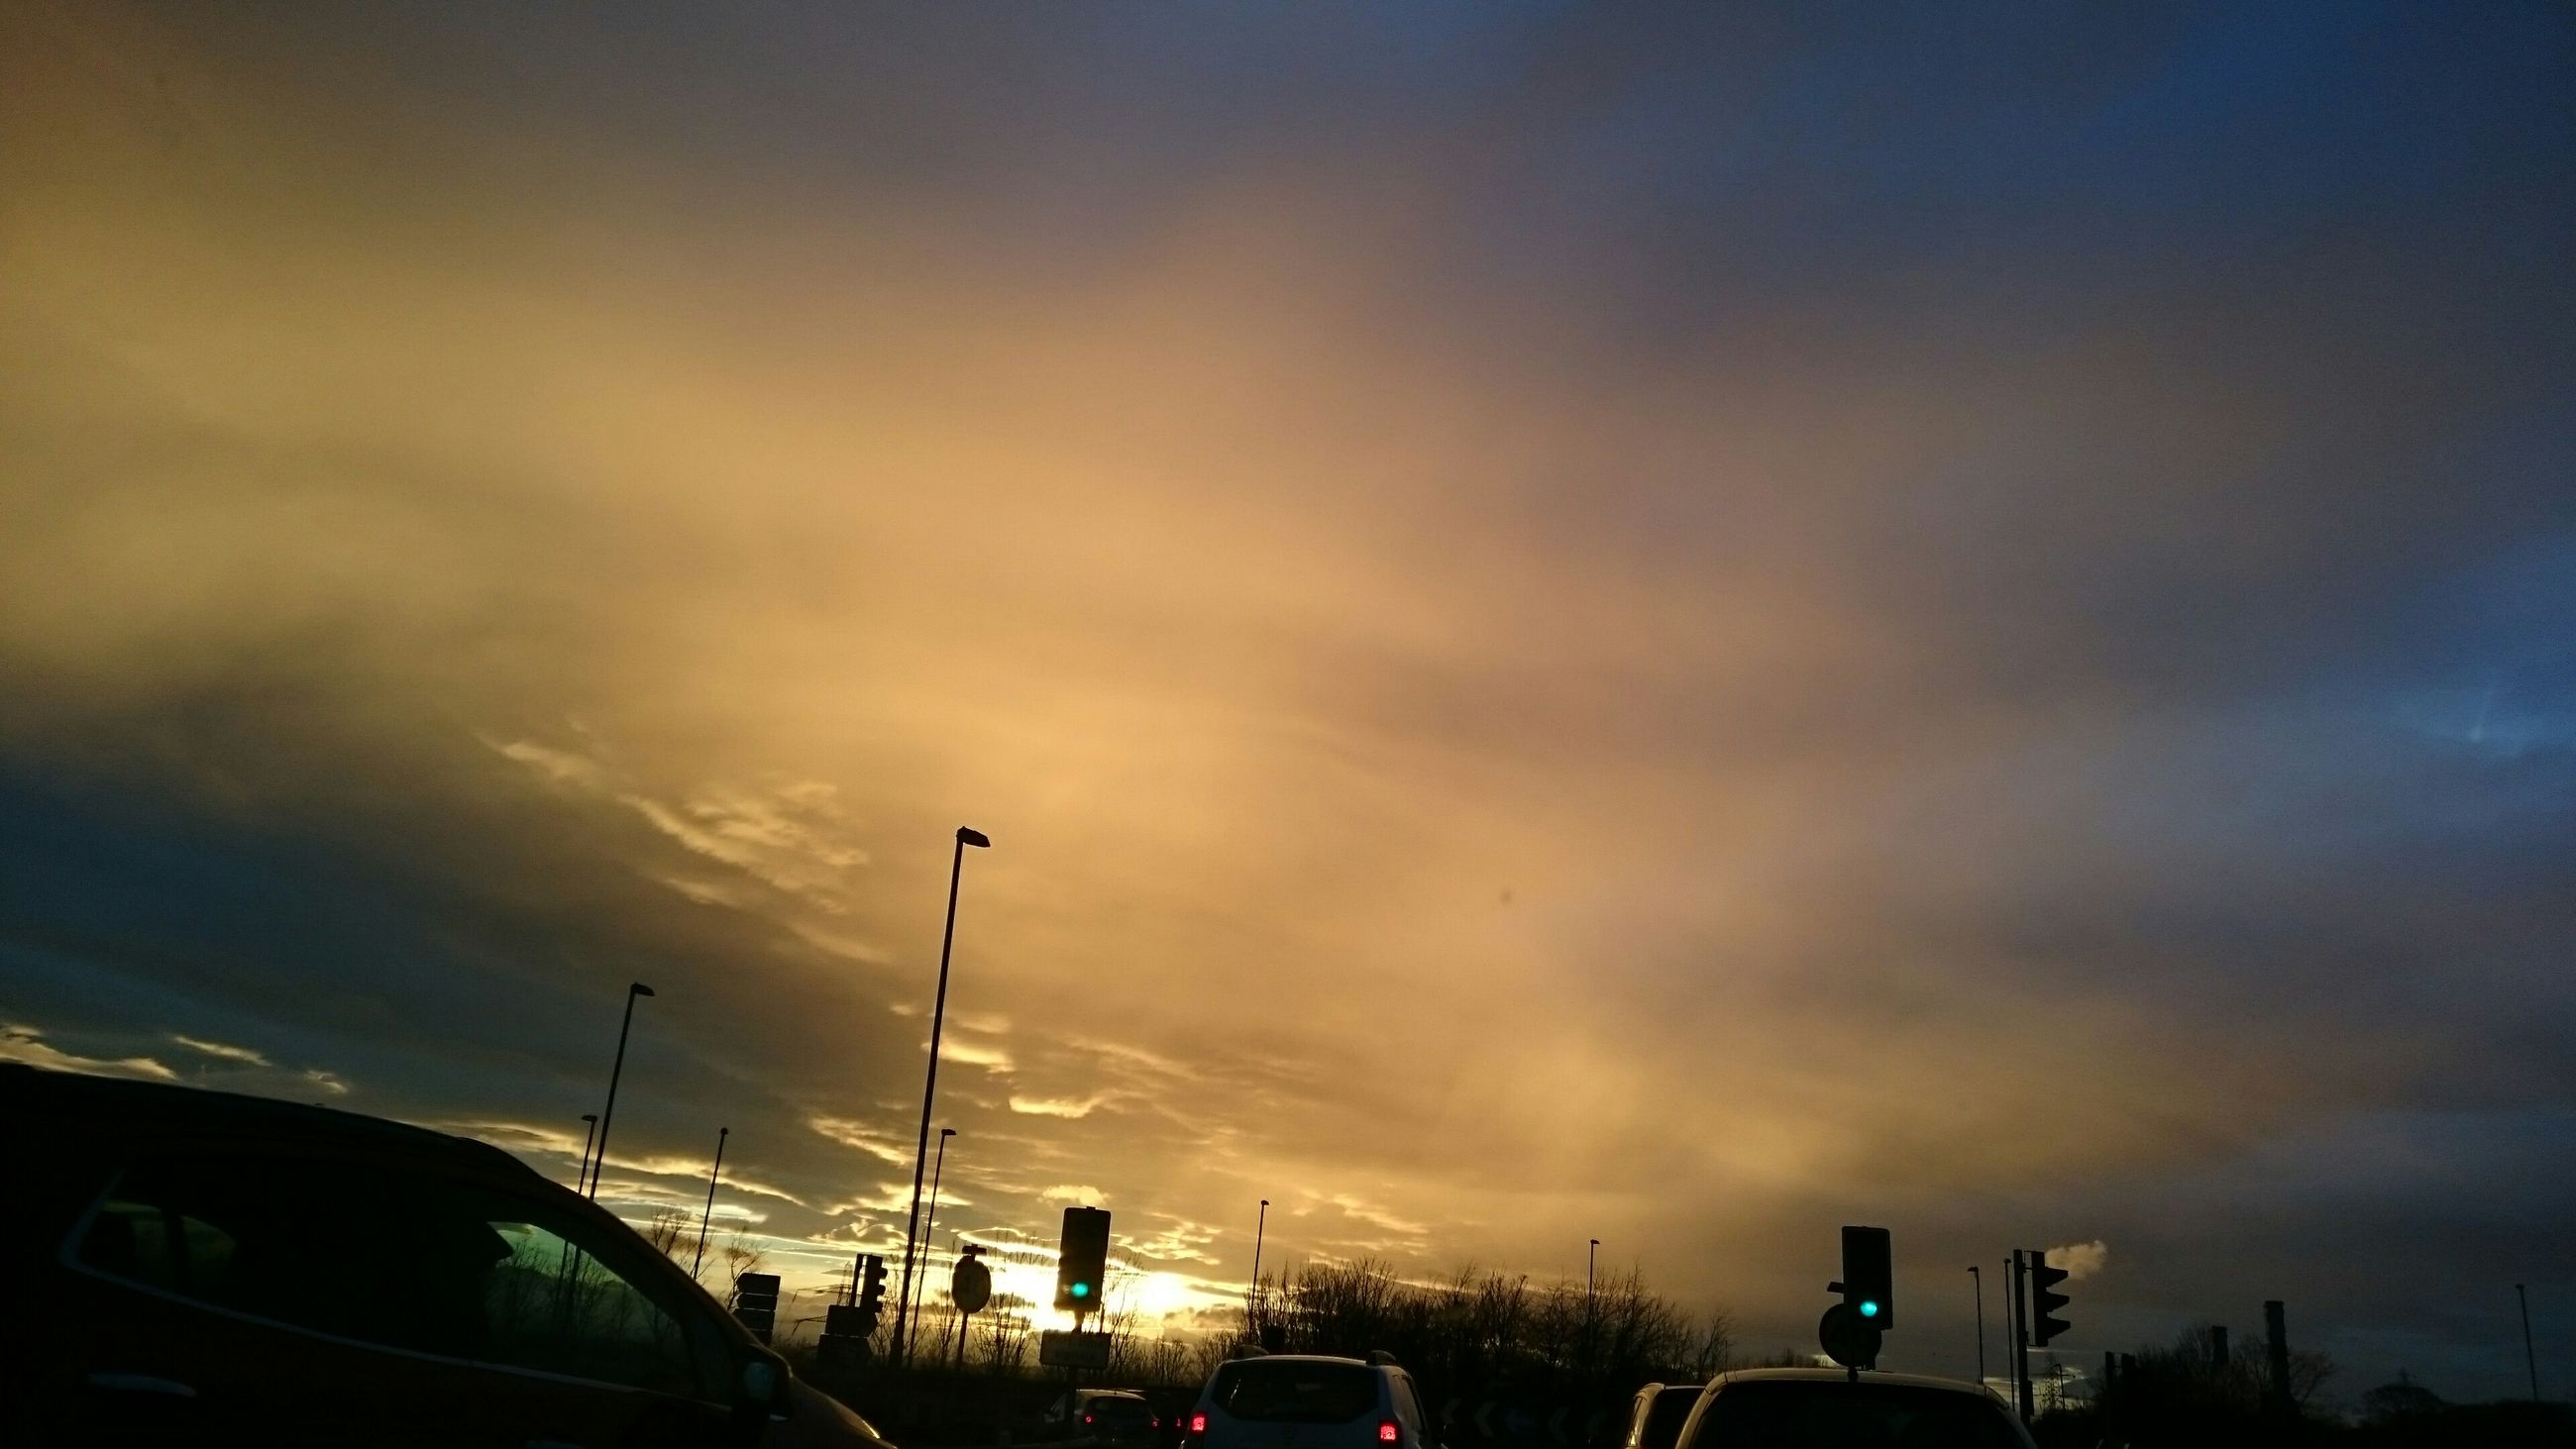 sky, cloud - sky, street light, transportation, car, building exterior, low angle view, sunset, built structure, silhouette, dusk, cloudy, land vehicle, mode of transport, architecture, city, cloud, overcast, weather, outdoors